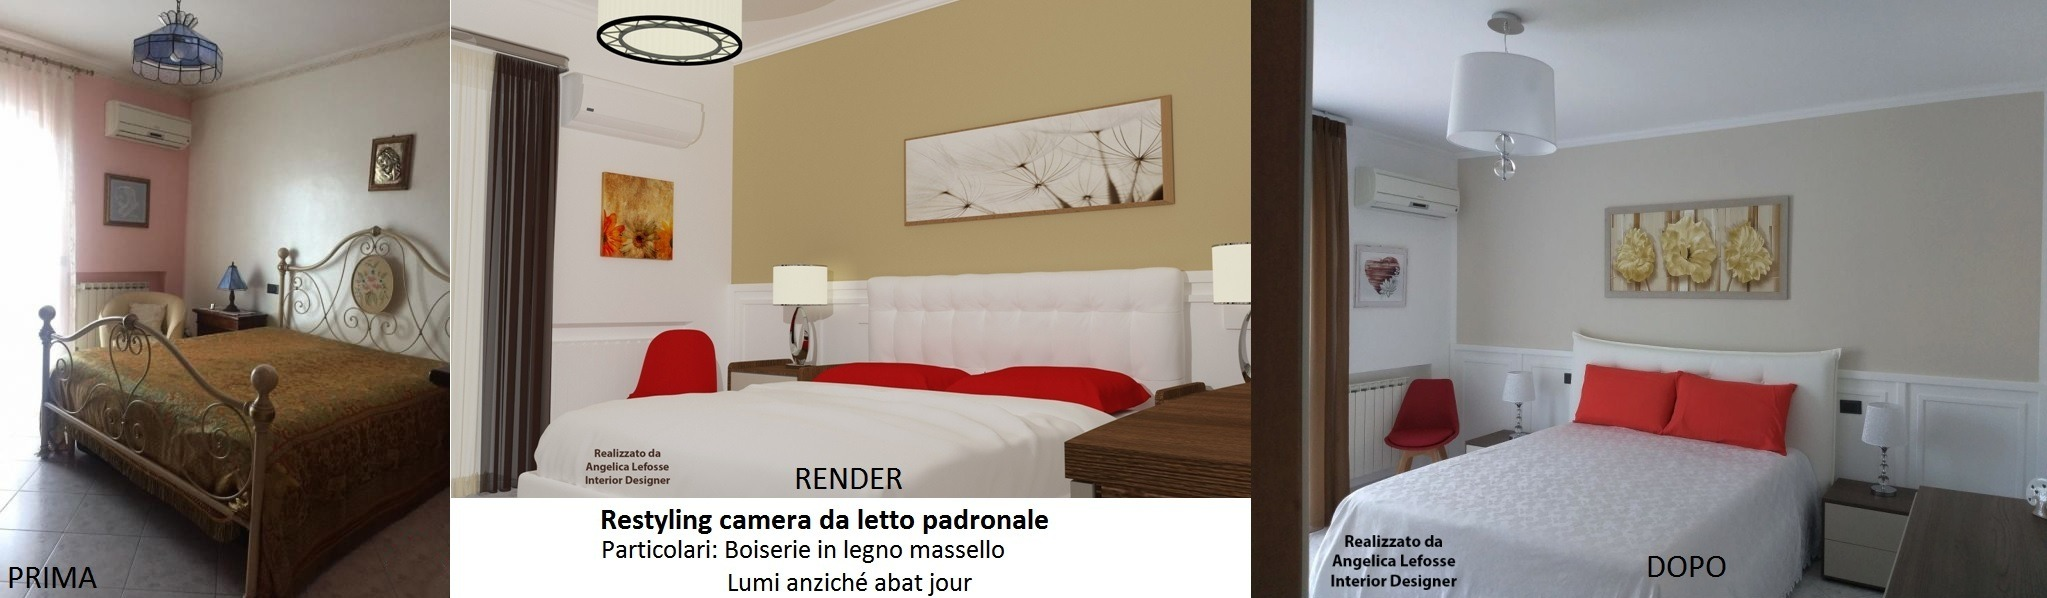 Restyling Camera da letto padronale 2 | Angelica Lefosse